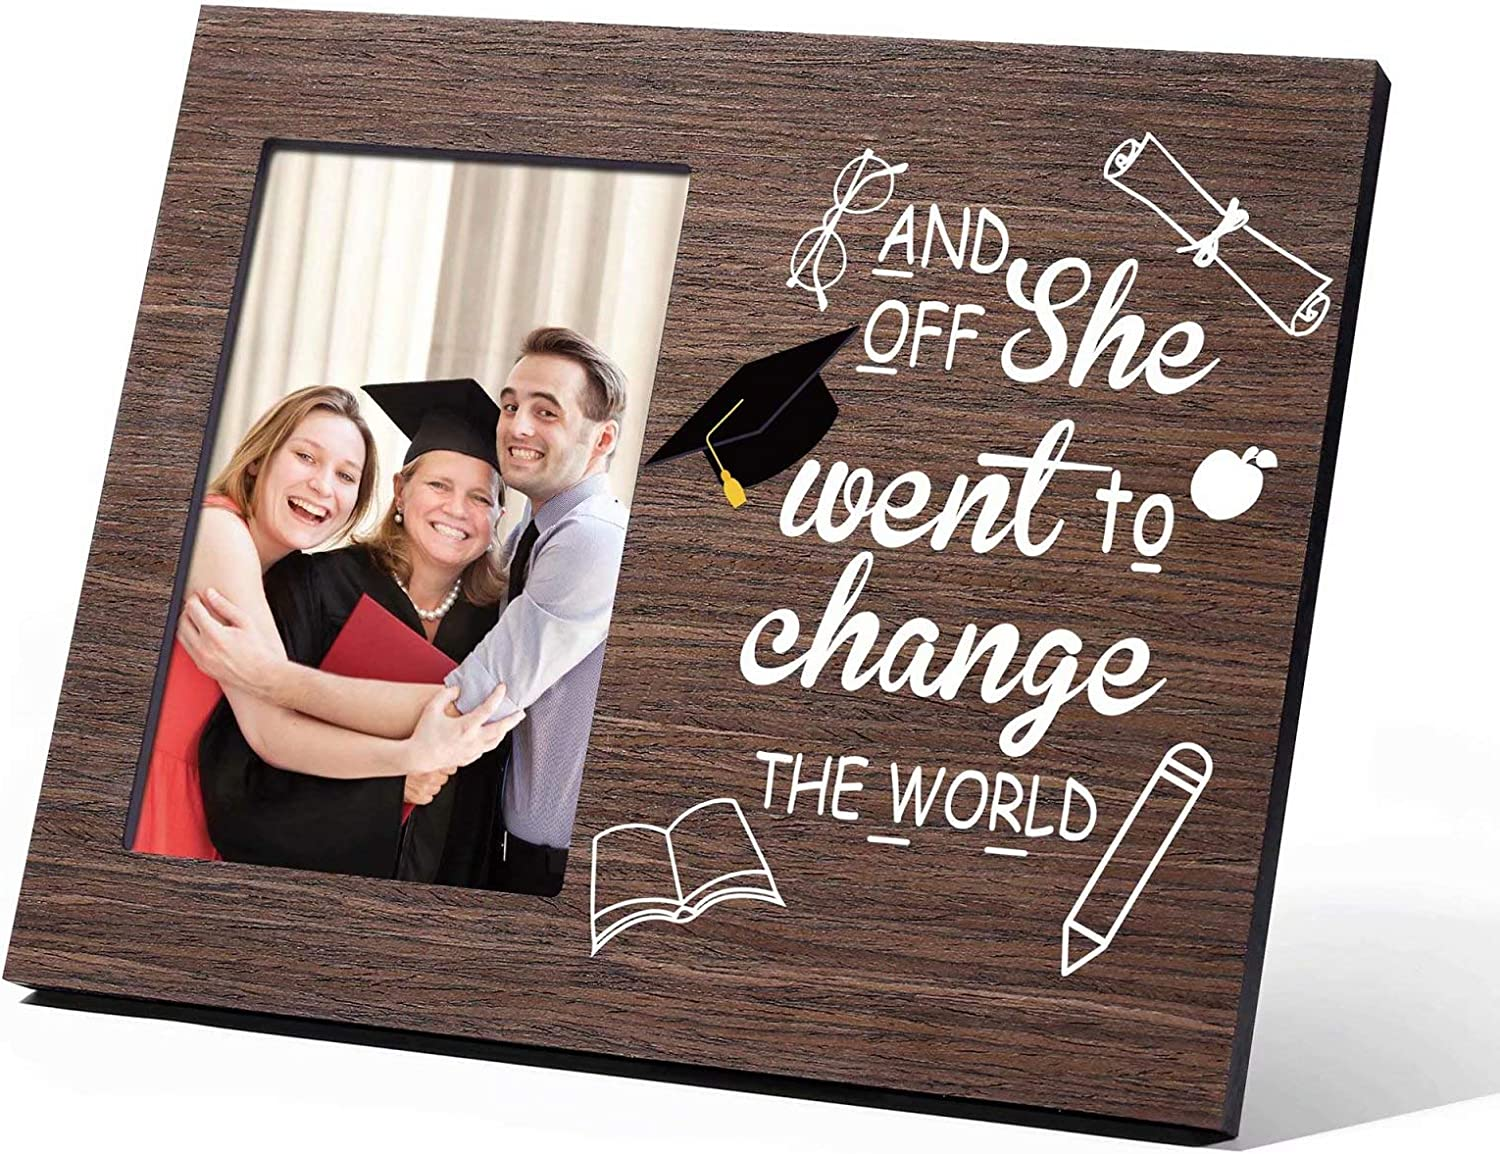 High School Graduation Gifts for Her 2021, and off She Went to Change the World Class of 2021 Inspirational College Graduation Gifts for Girls Women, Picture Frame 4x6 Wood